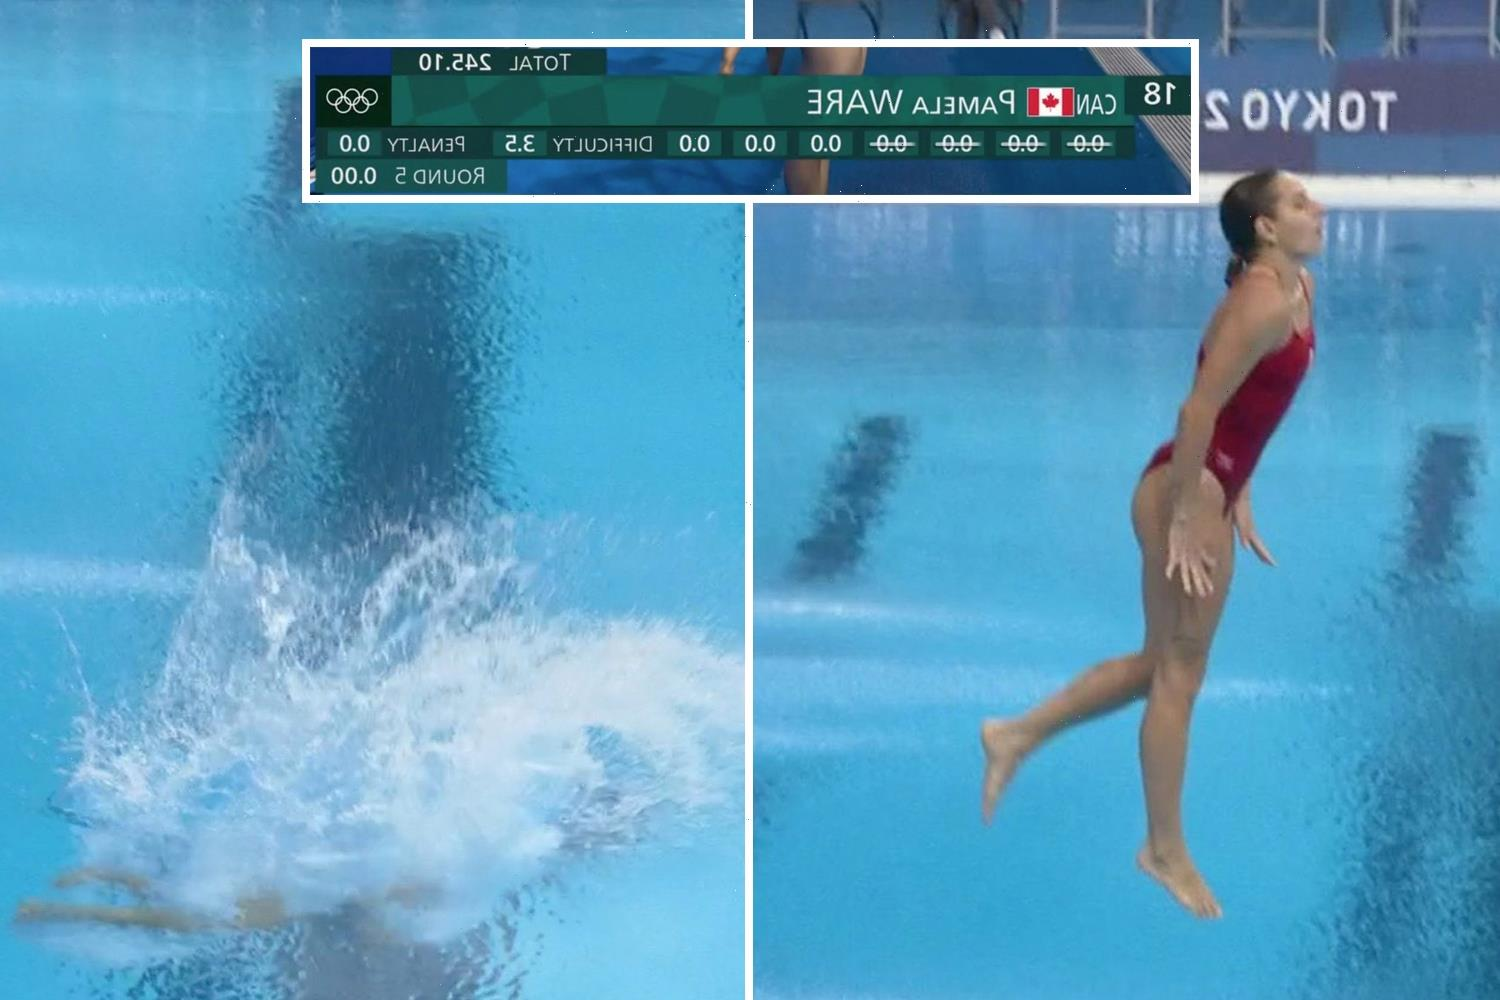 Watch Canadian diver score 0.0 at Olympics as she lands in pool feet first after pulling out of move over safety concern